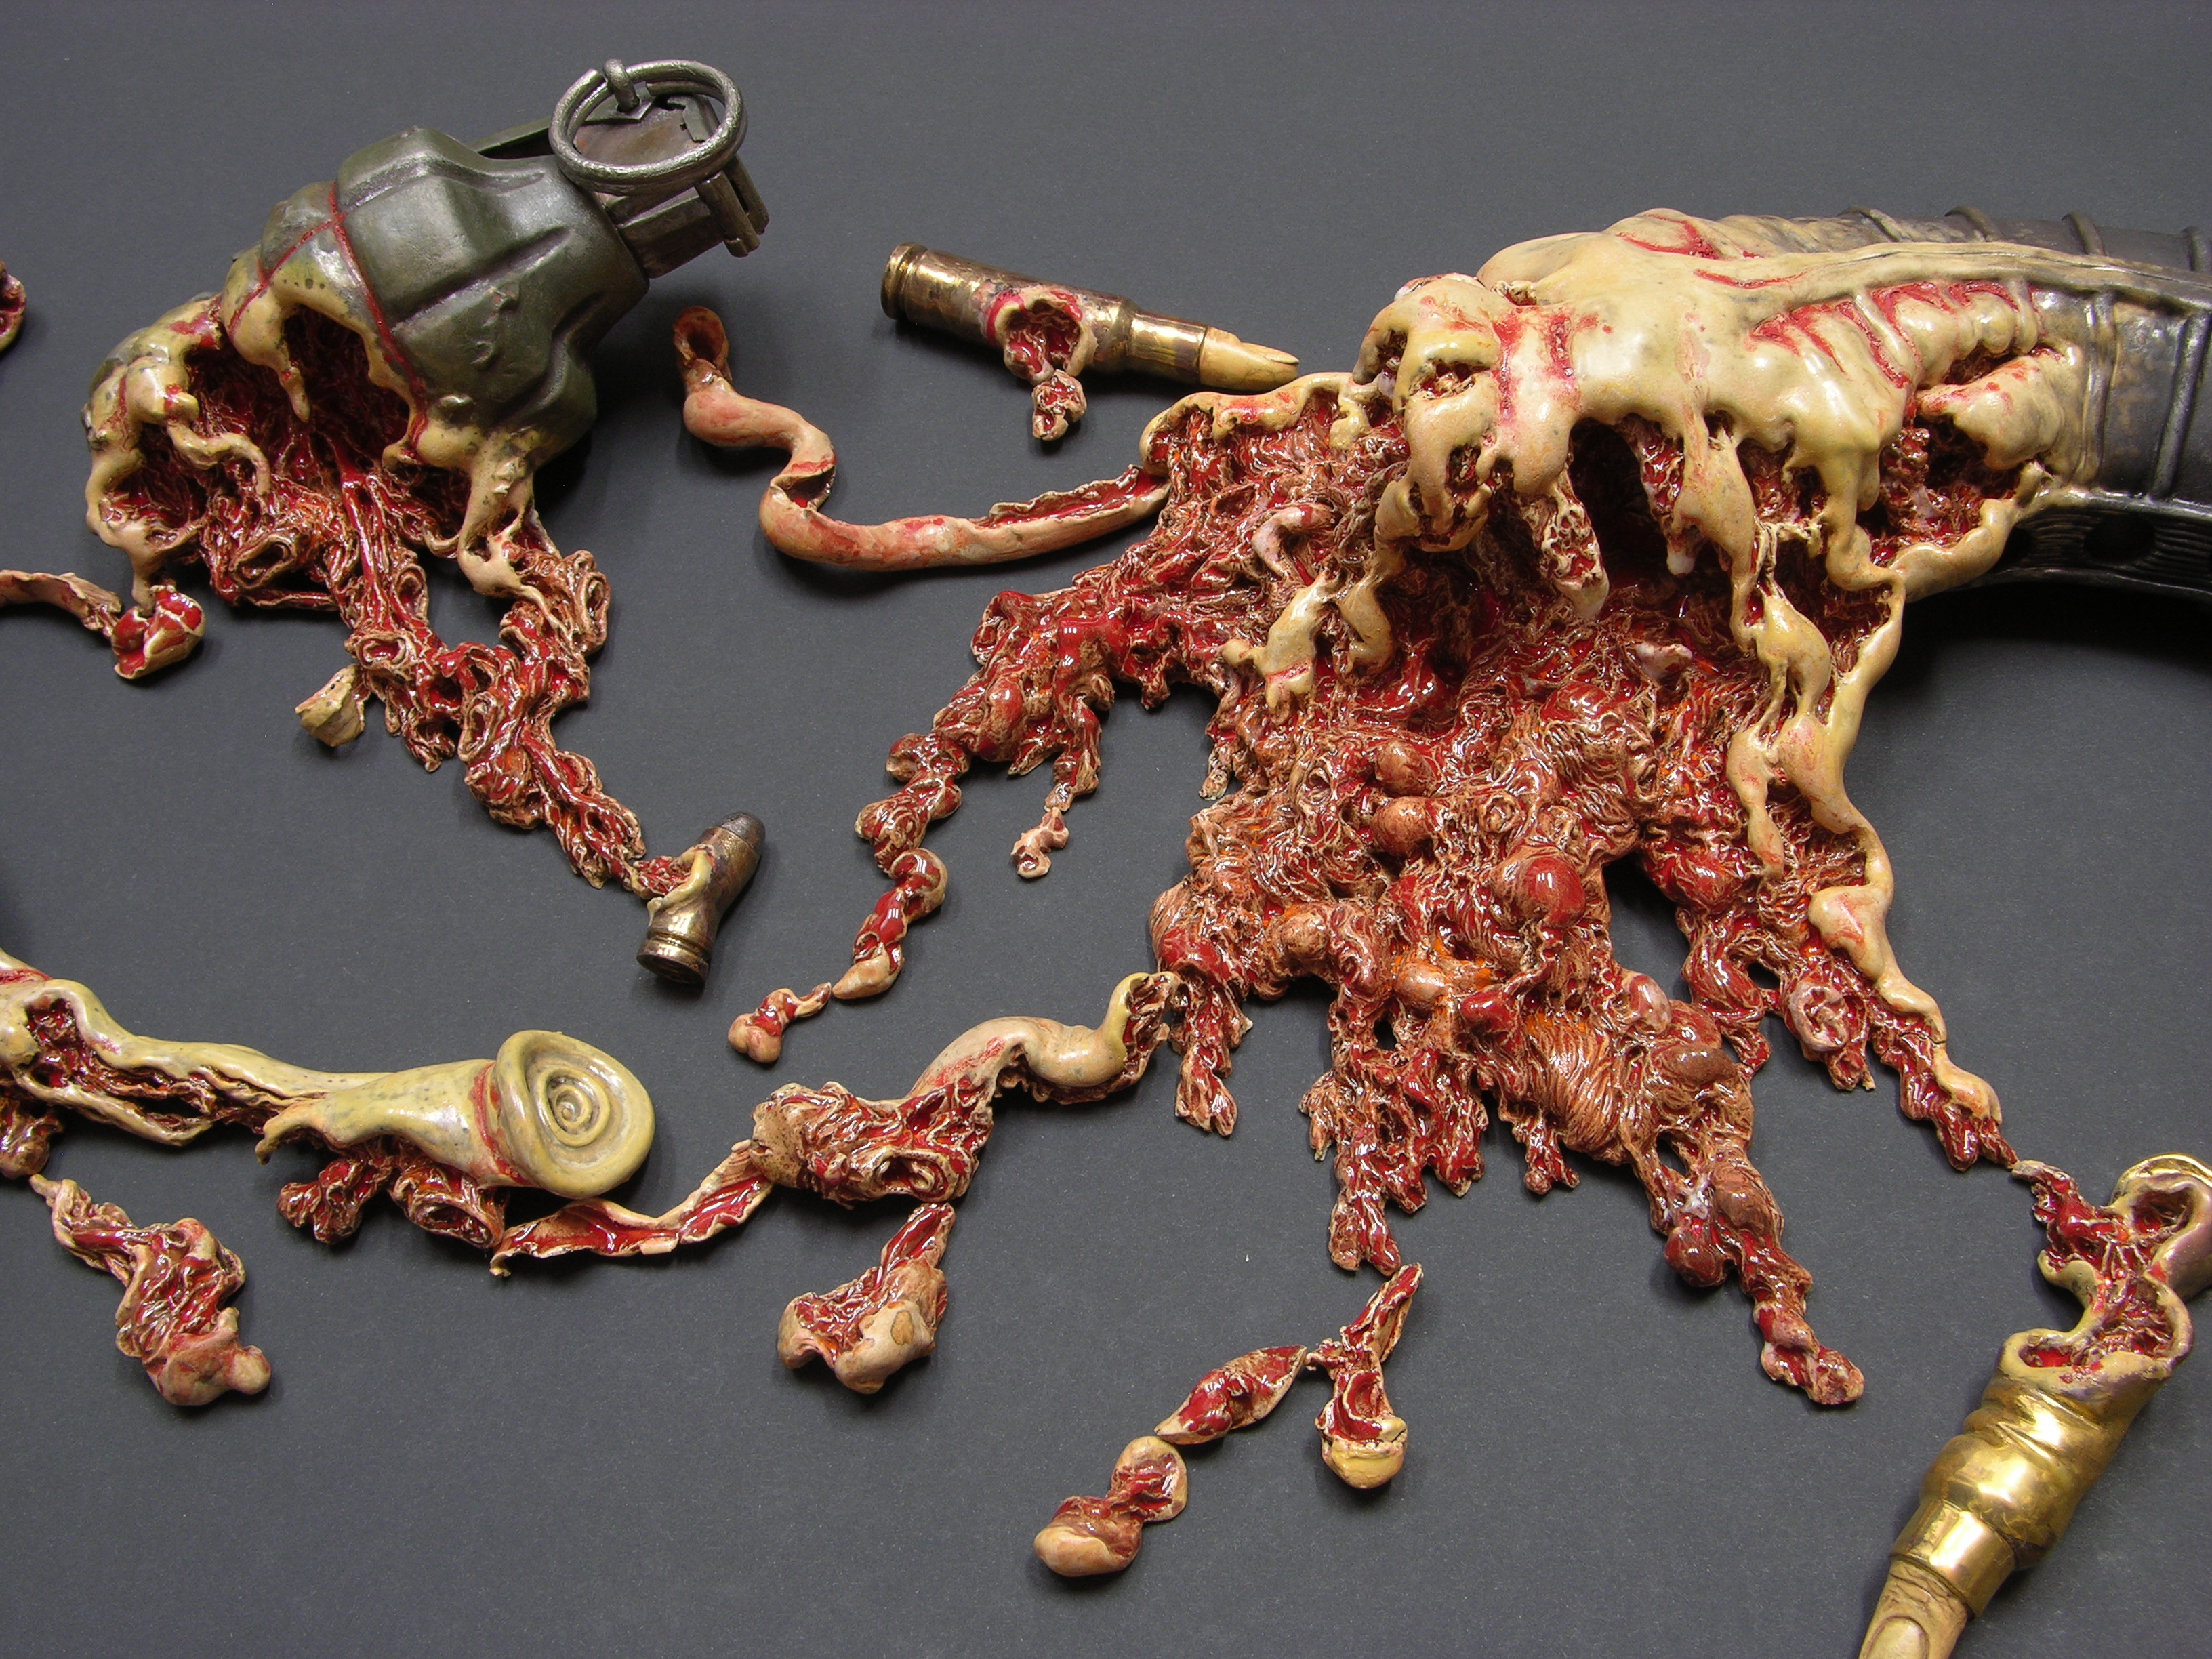 Guns And Gore Merge In Bloody Ceramic Sculptures Vice